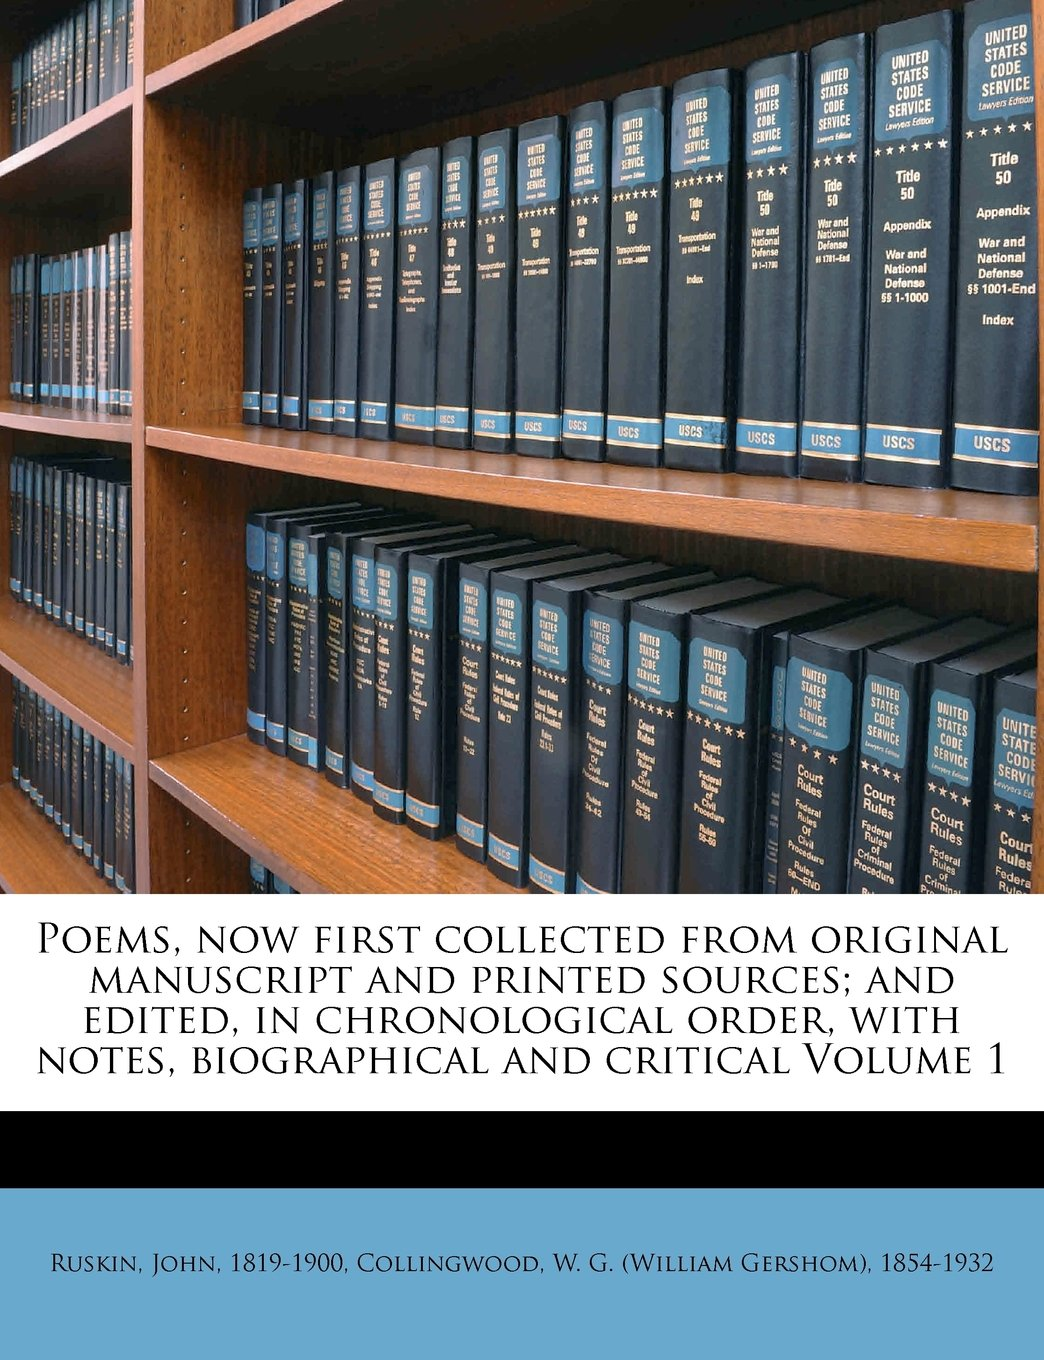 Poems, now first collected from original manuscript and printed sources; and edited, in chronological order, with notes, biographical and critical Volume 1 ebook